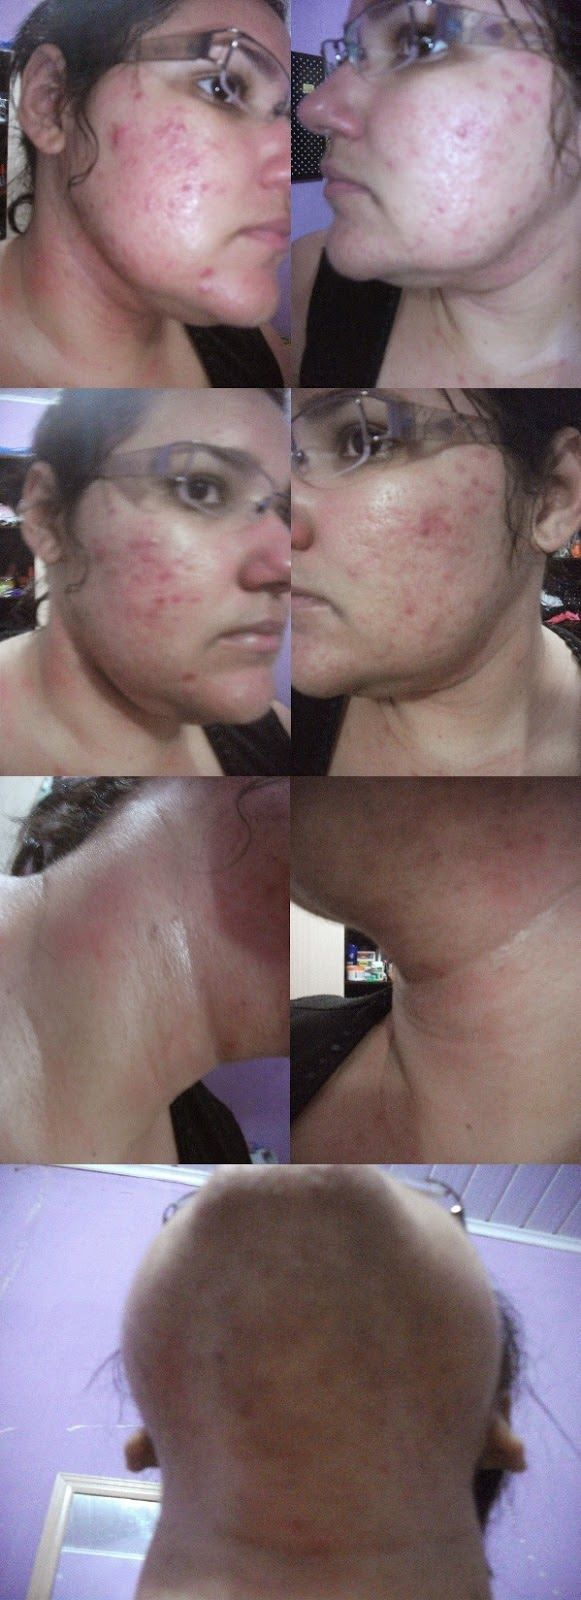 Flaviland  : ♥ Roacutan, eu usei! ♥ Treatment of Acne ♥ Tratamiento del acné ♥